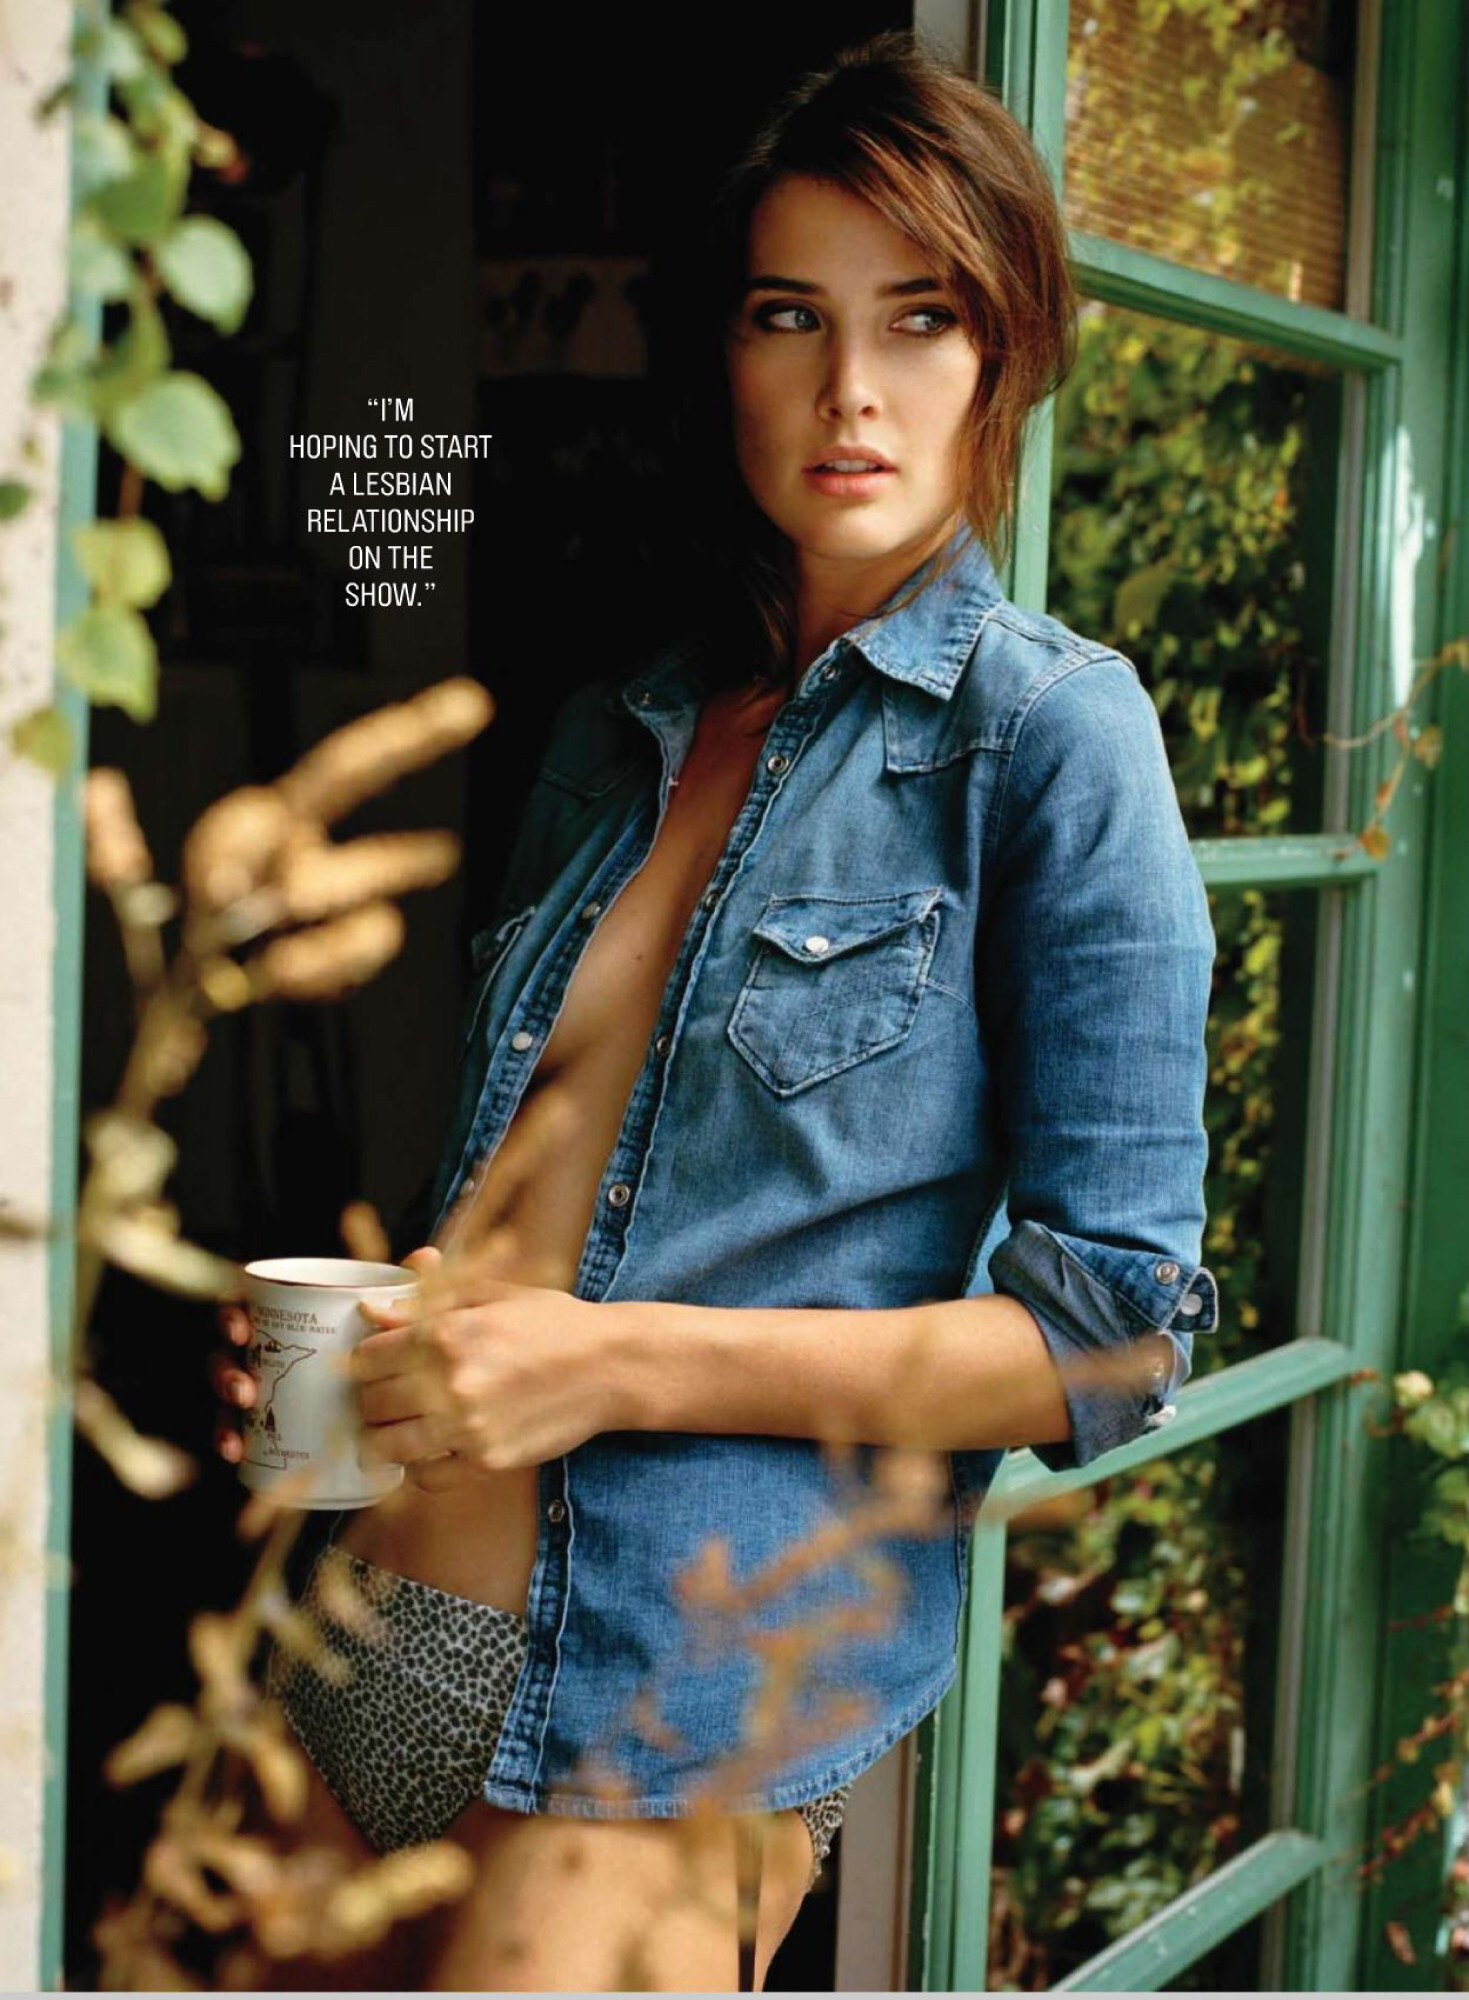 Actress Cobie Smulders smoking hot in a revealing denim shirt for the Maxim magazine photo shoot. (cobie_smulders013, 1469 x 2000 pixels, 490 kB)